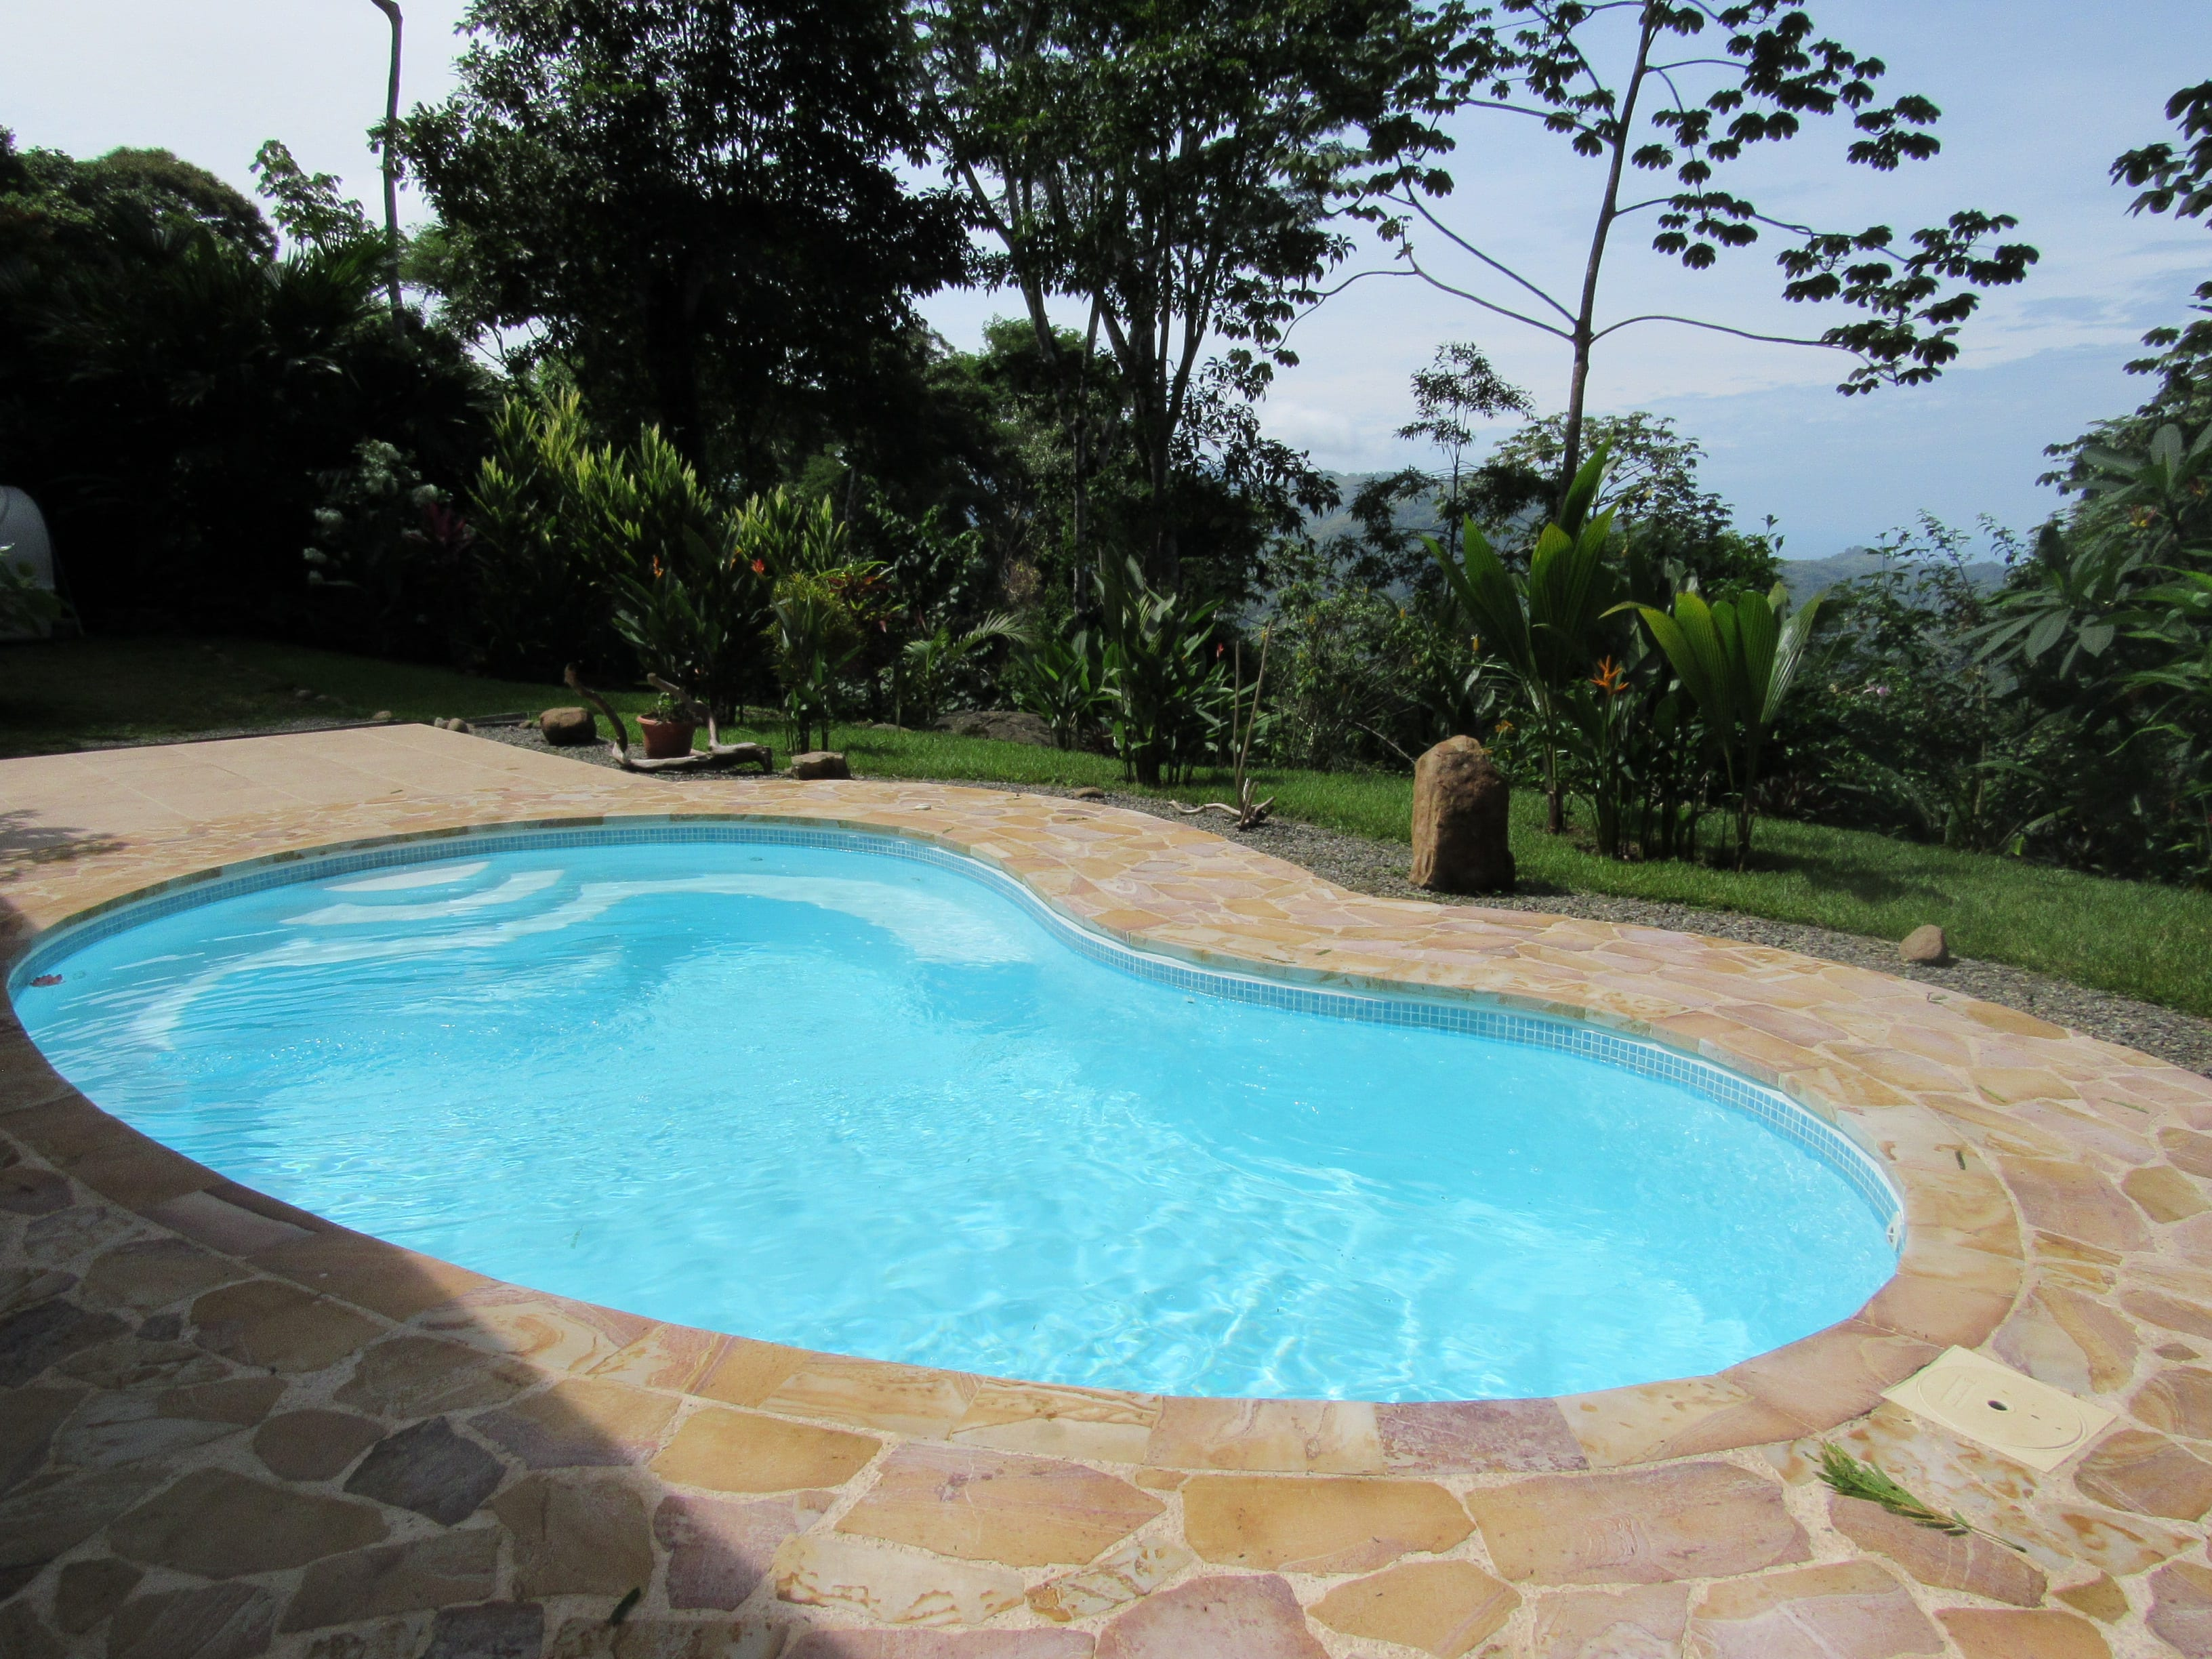 1.25 ACRES - 5 Bedroom Home With Pool And Ocean View!!!